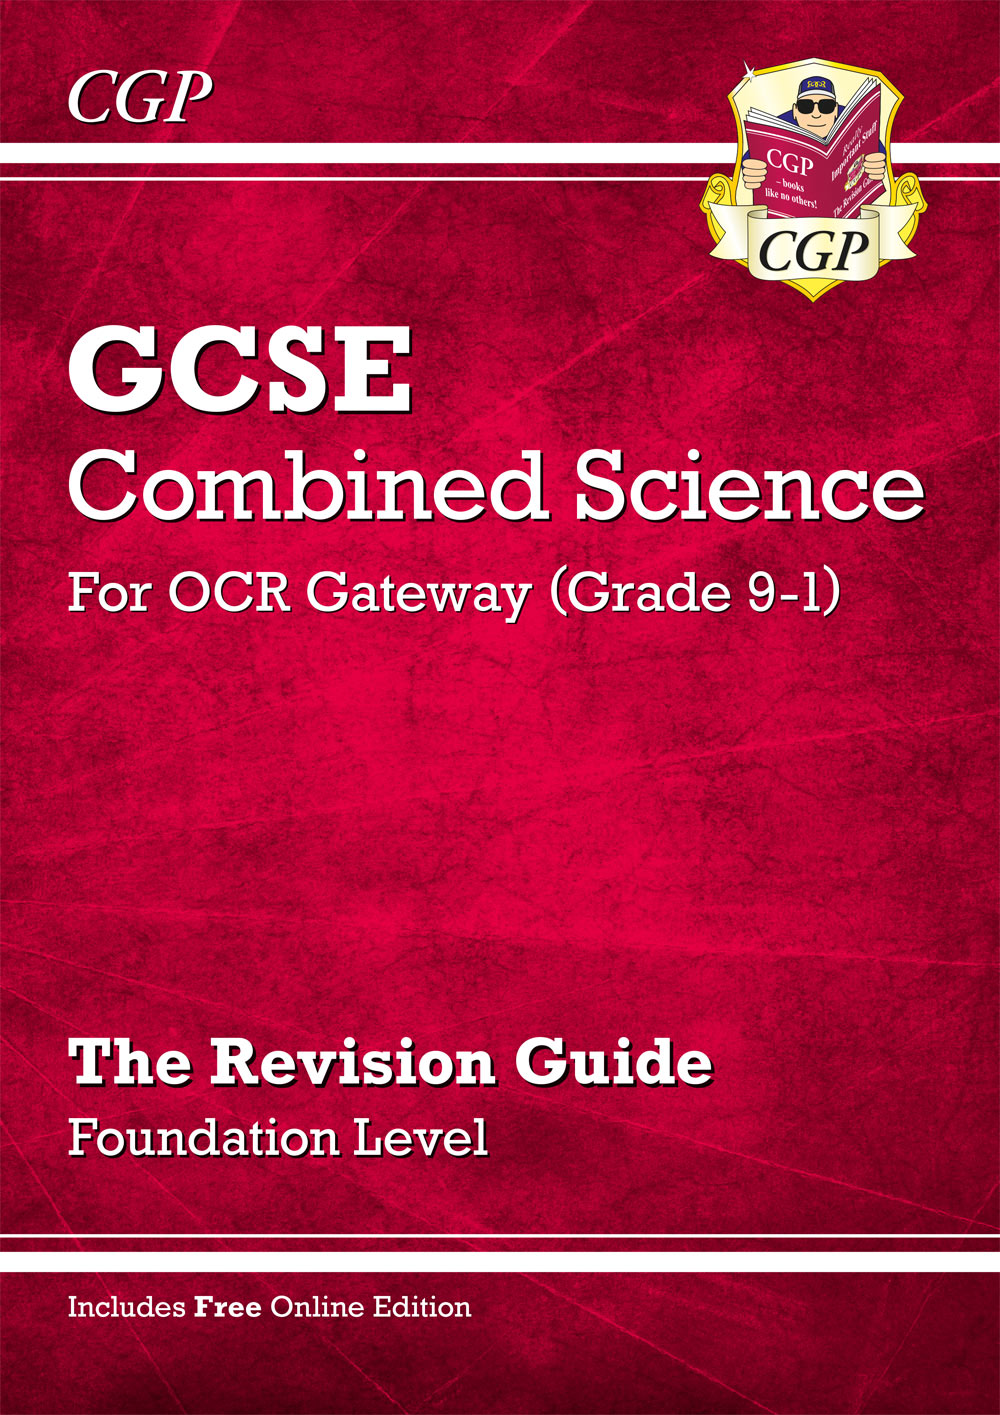 SRFR45 - Grade 9-1 GCSE Combined Science: OCR Gateway Revision Guide with Online Edition - Foundatio